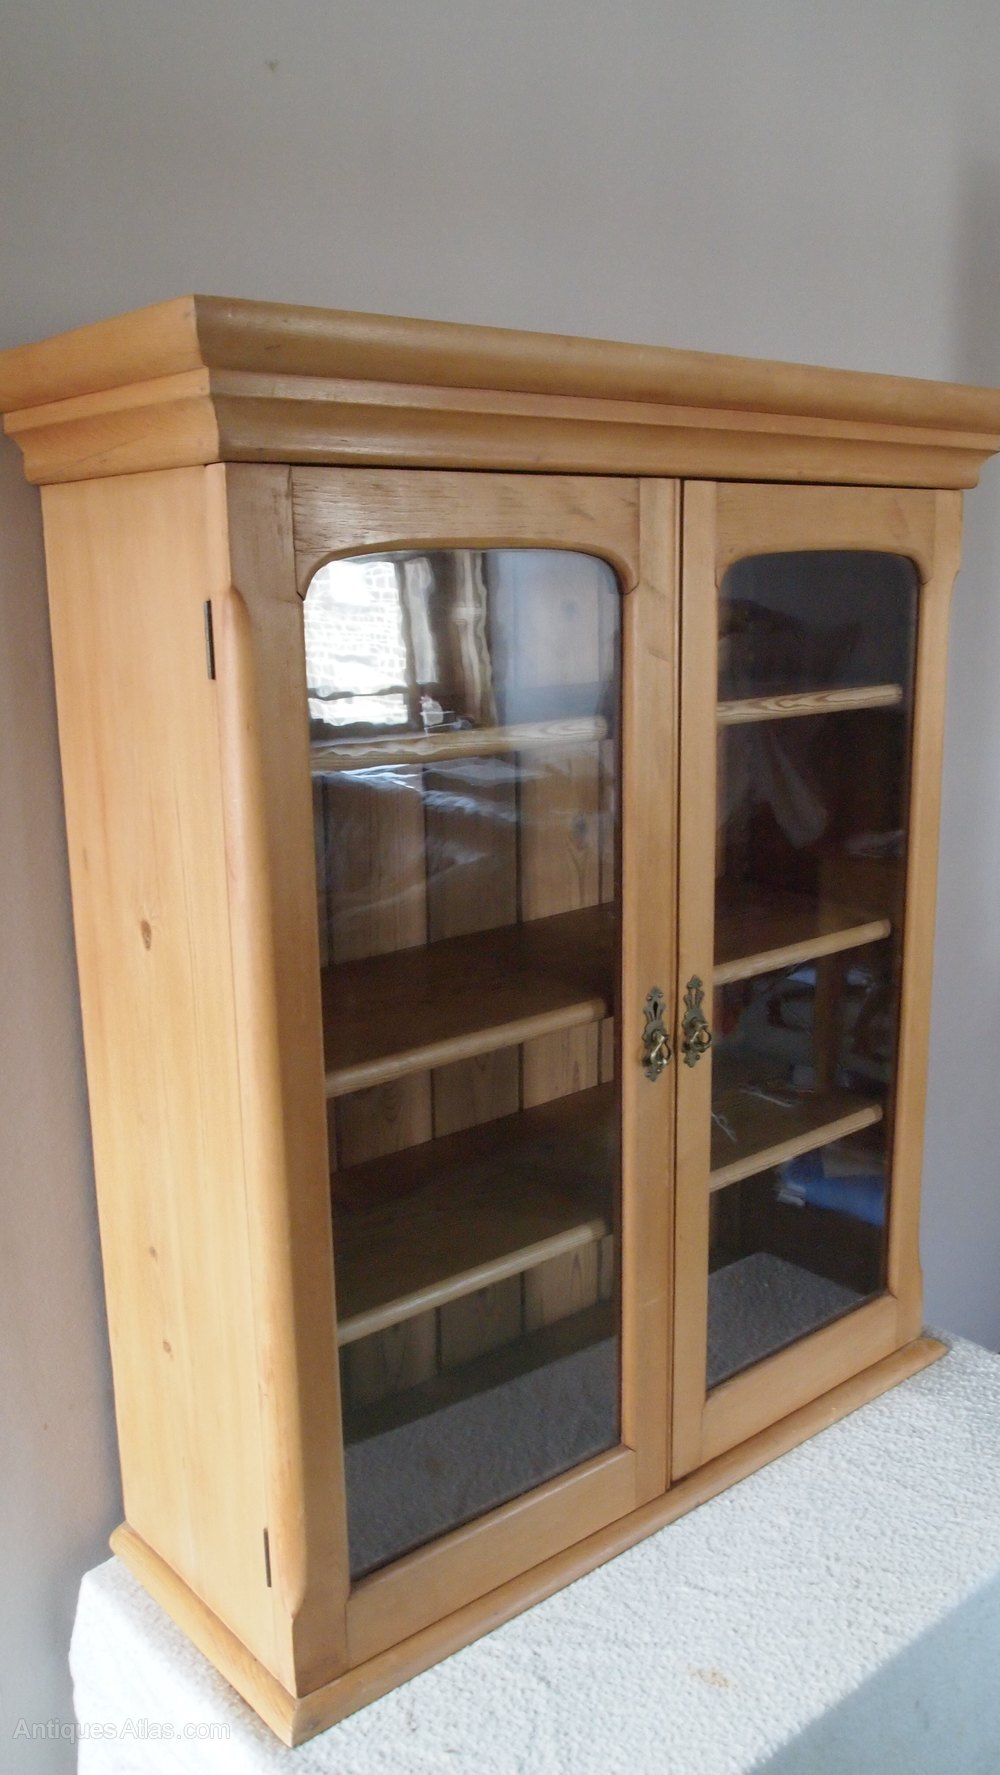 Cabinet Cupboard Victorian Antique Pine Wall Cupboard - Antiques Atlas